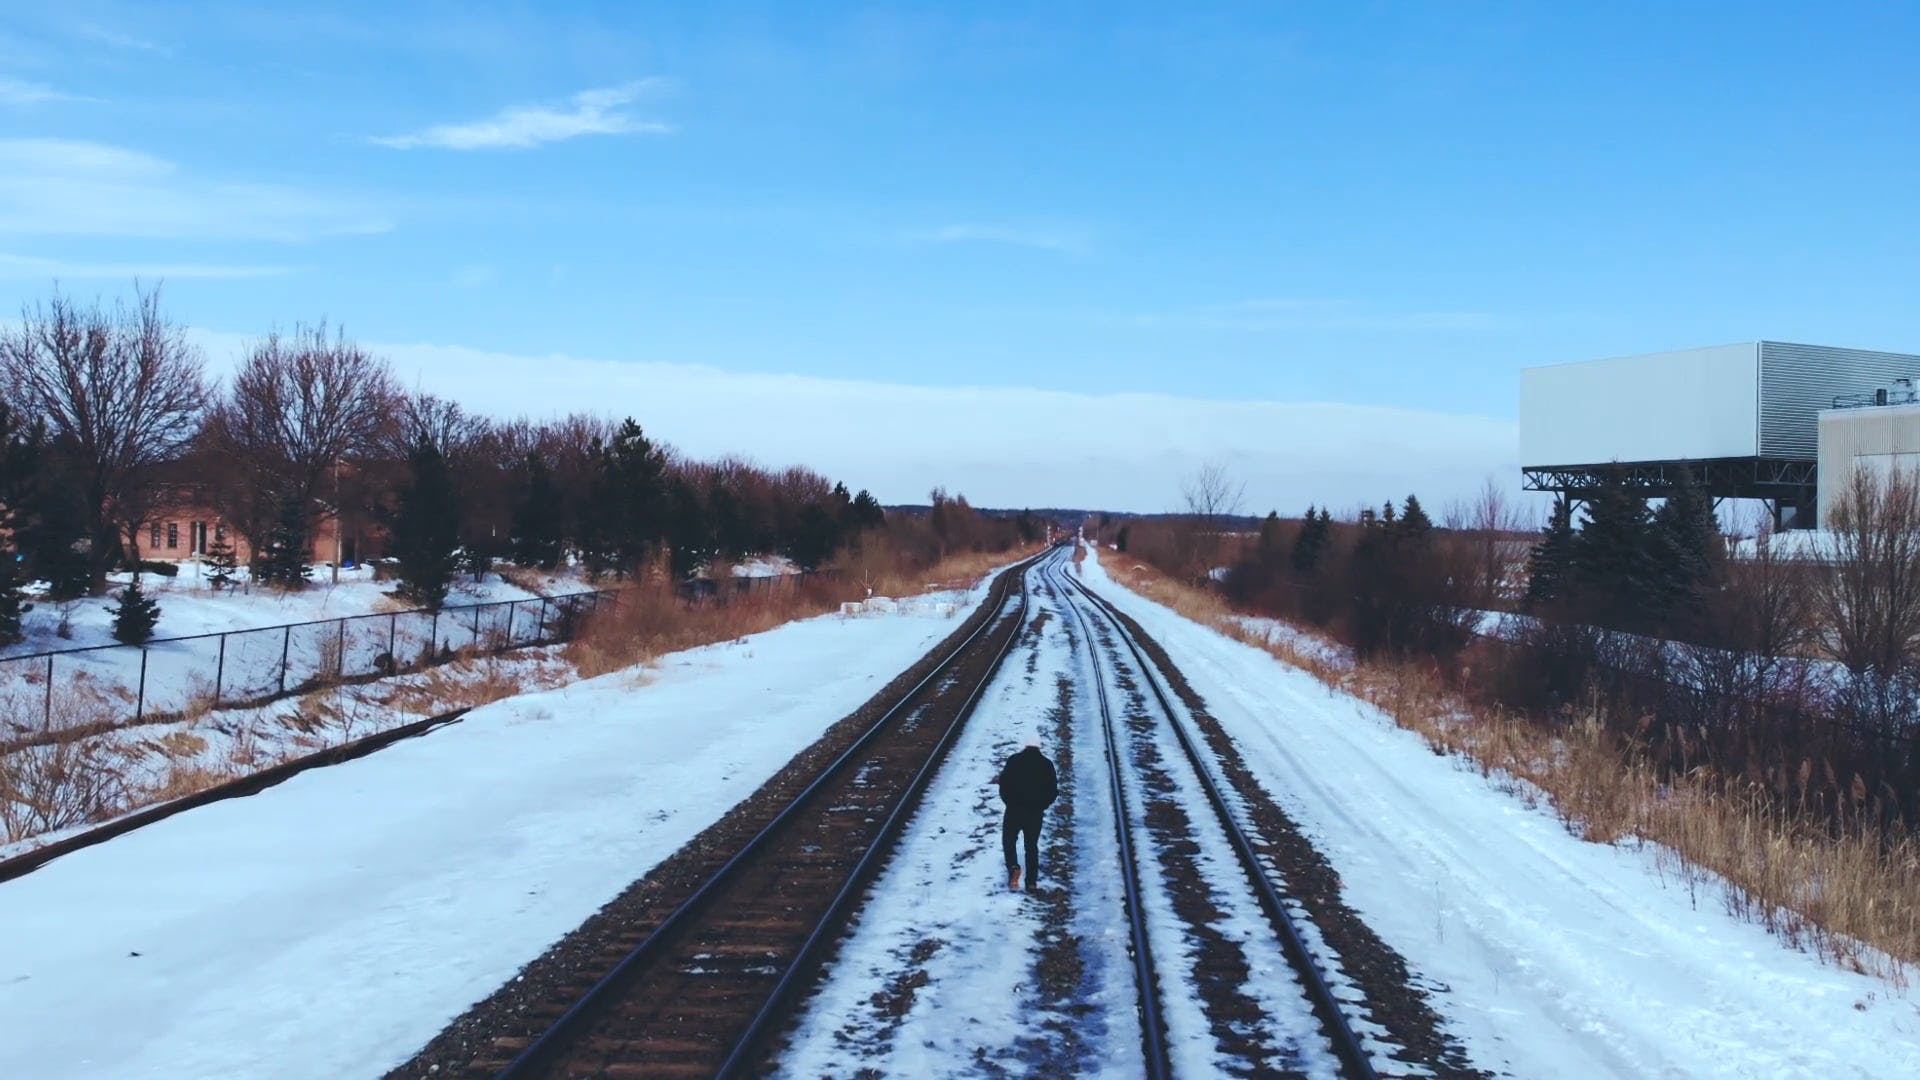 Photo of Man Walking On Railroad During Winter